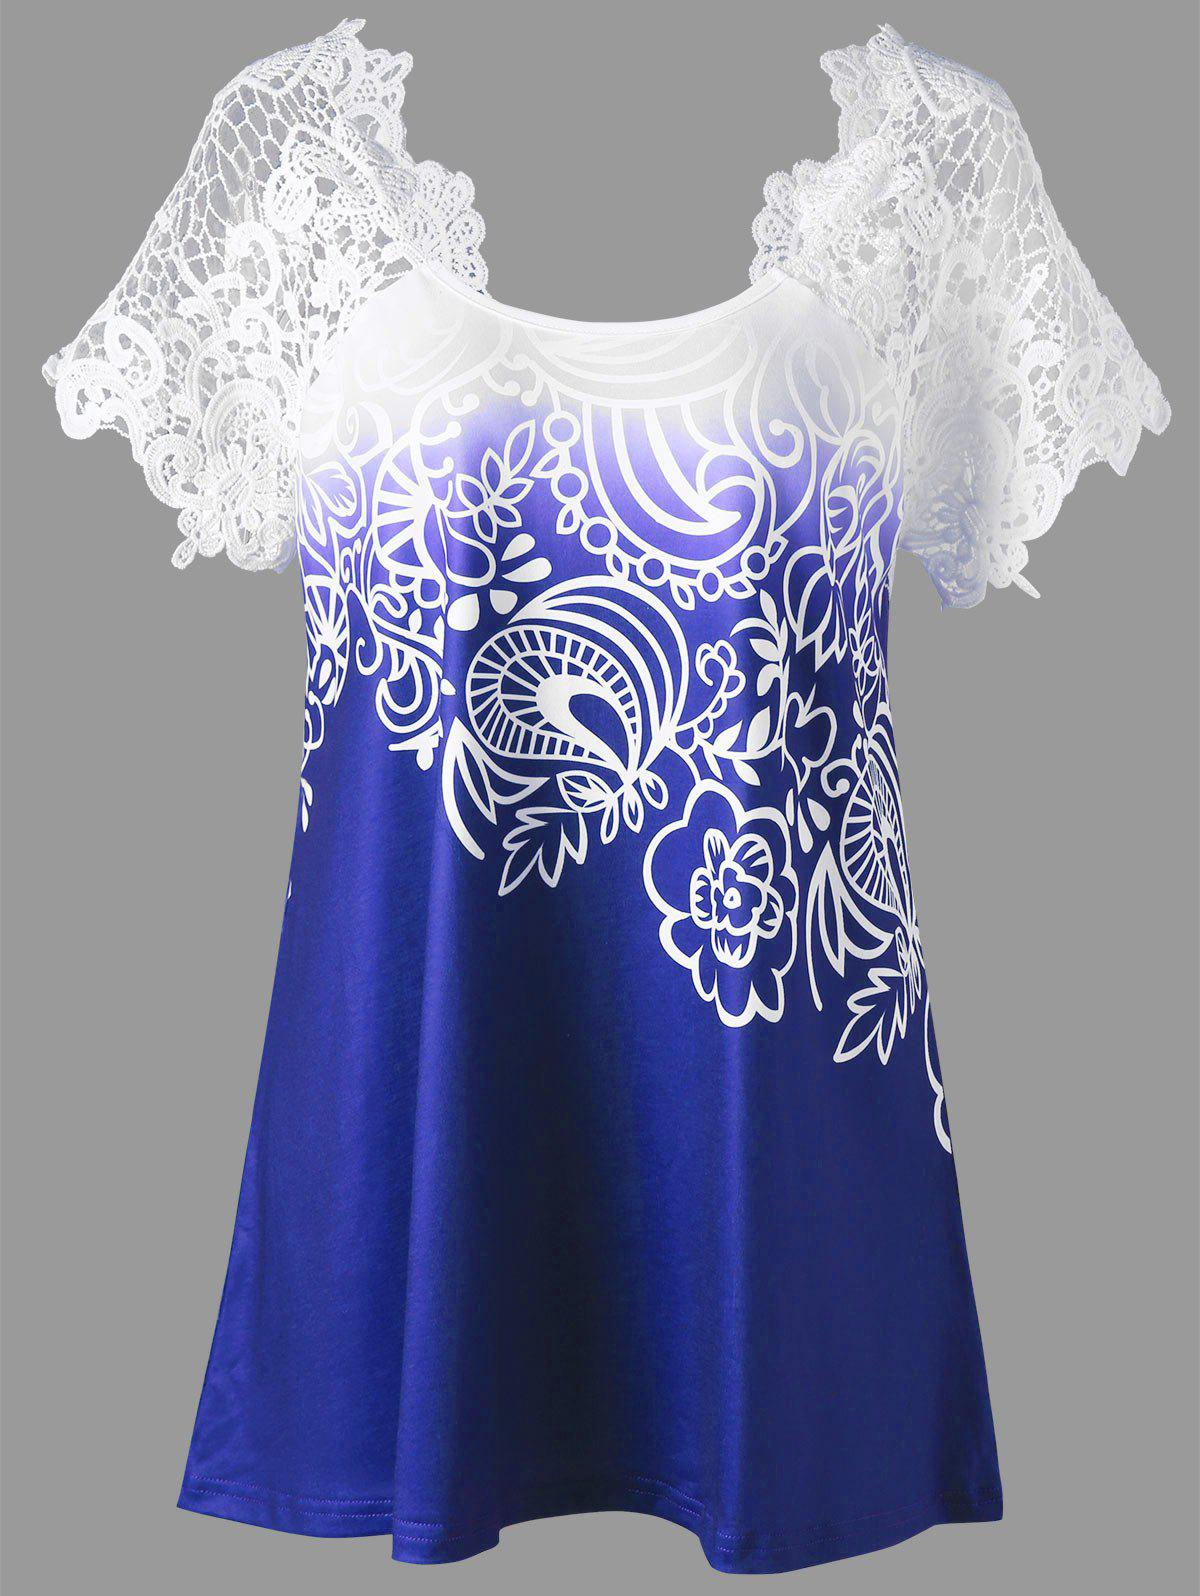 Lace Panel Raglan Sleeve Floral Plus Size TopWOMEN<br><br>Size: 5XL; Color: BLUE; Material: Polyester,Spandex; Shirt Length: Regular; Sleeve Length: Short; Collar: Round Neck; Style: Fashion; Season: Fall,Spring,Summer; Embellishment: Lace; Pattern Type: Floral; Weight: 0.2300kg; Package Contents: 1 x Top;